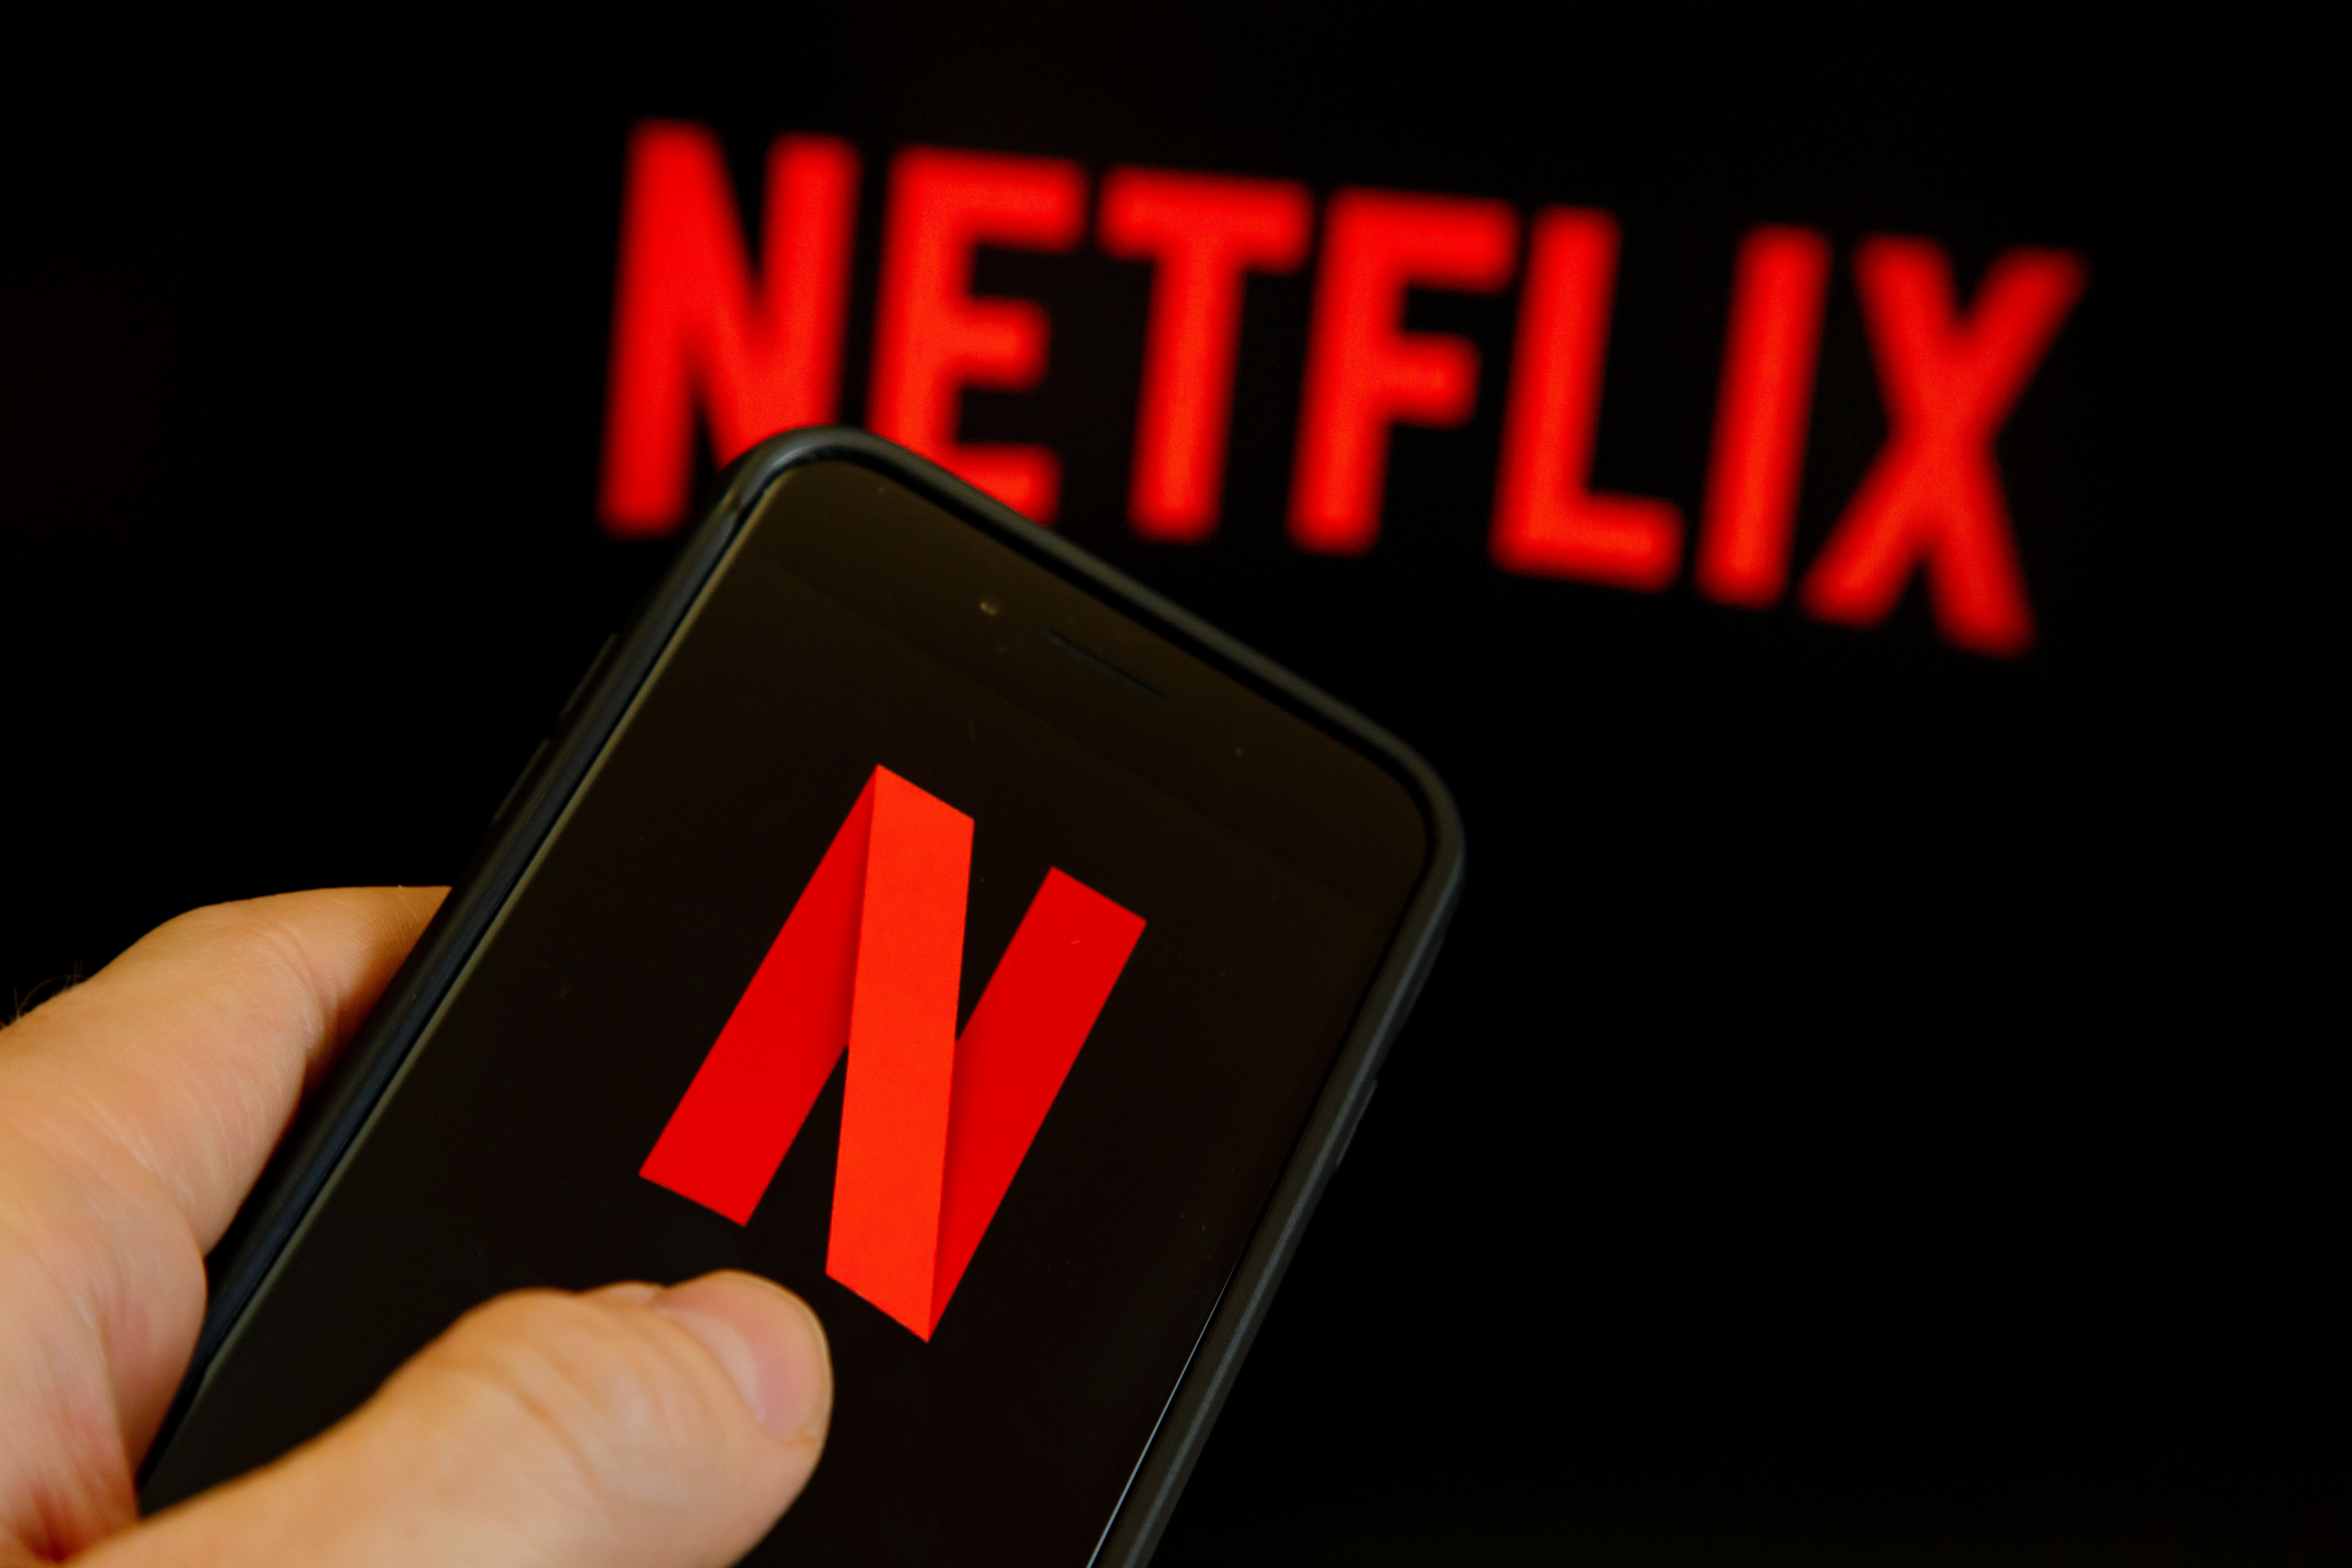 LGBTQ advocacy groups are applauding news that Netflix won't film a new series in North Carolina over the state's anti-LGBTQ